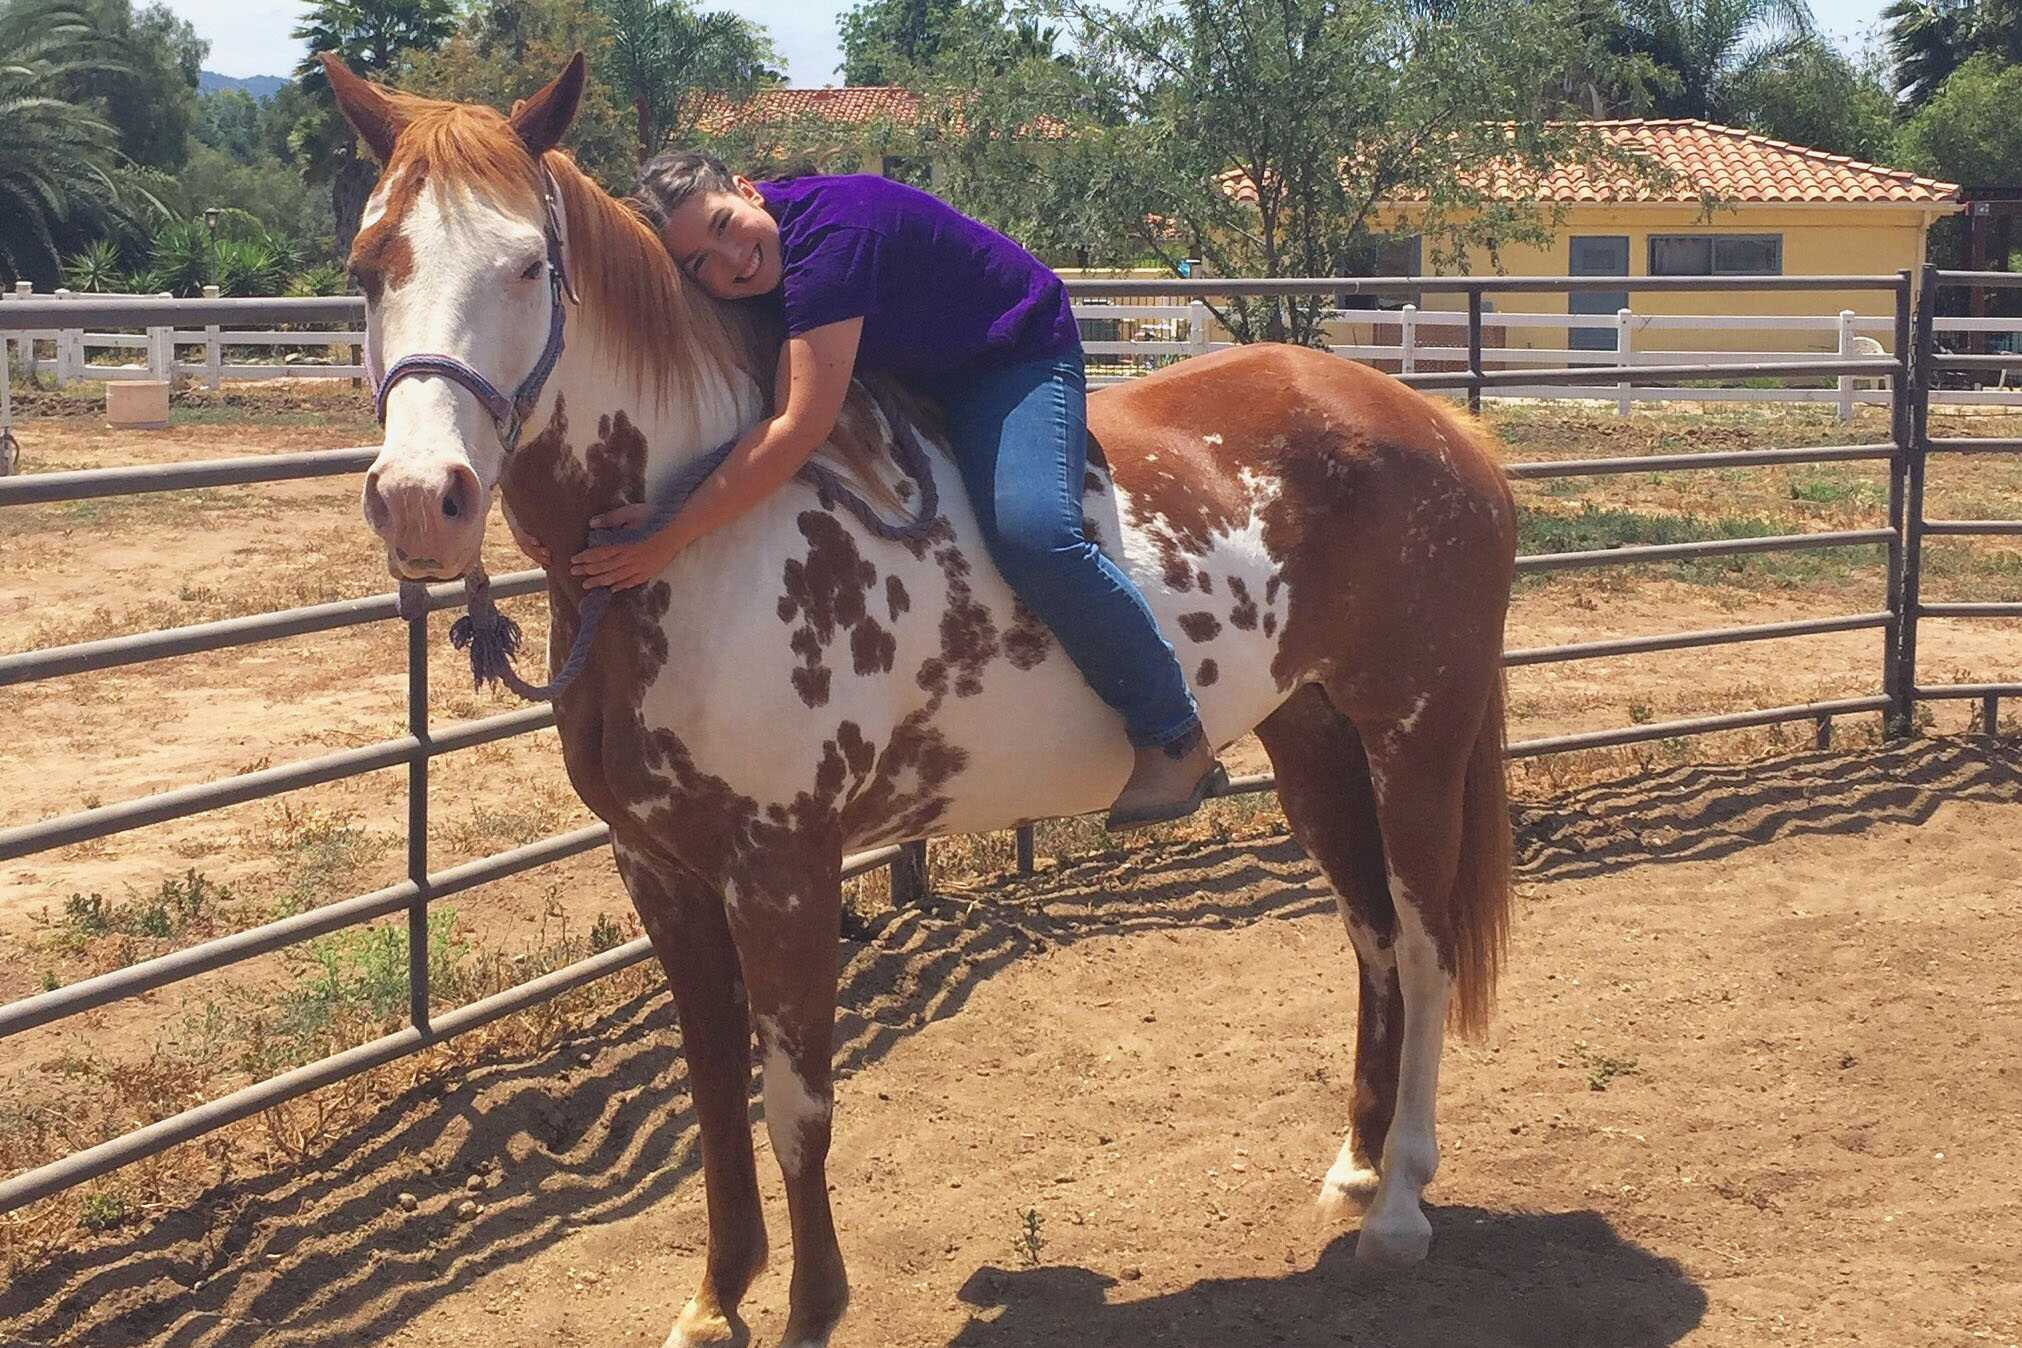 Seabury Hall senior Maryann Shilo treasures the time she spends with horses, especially with Pearl, her mother's Paint horse.